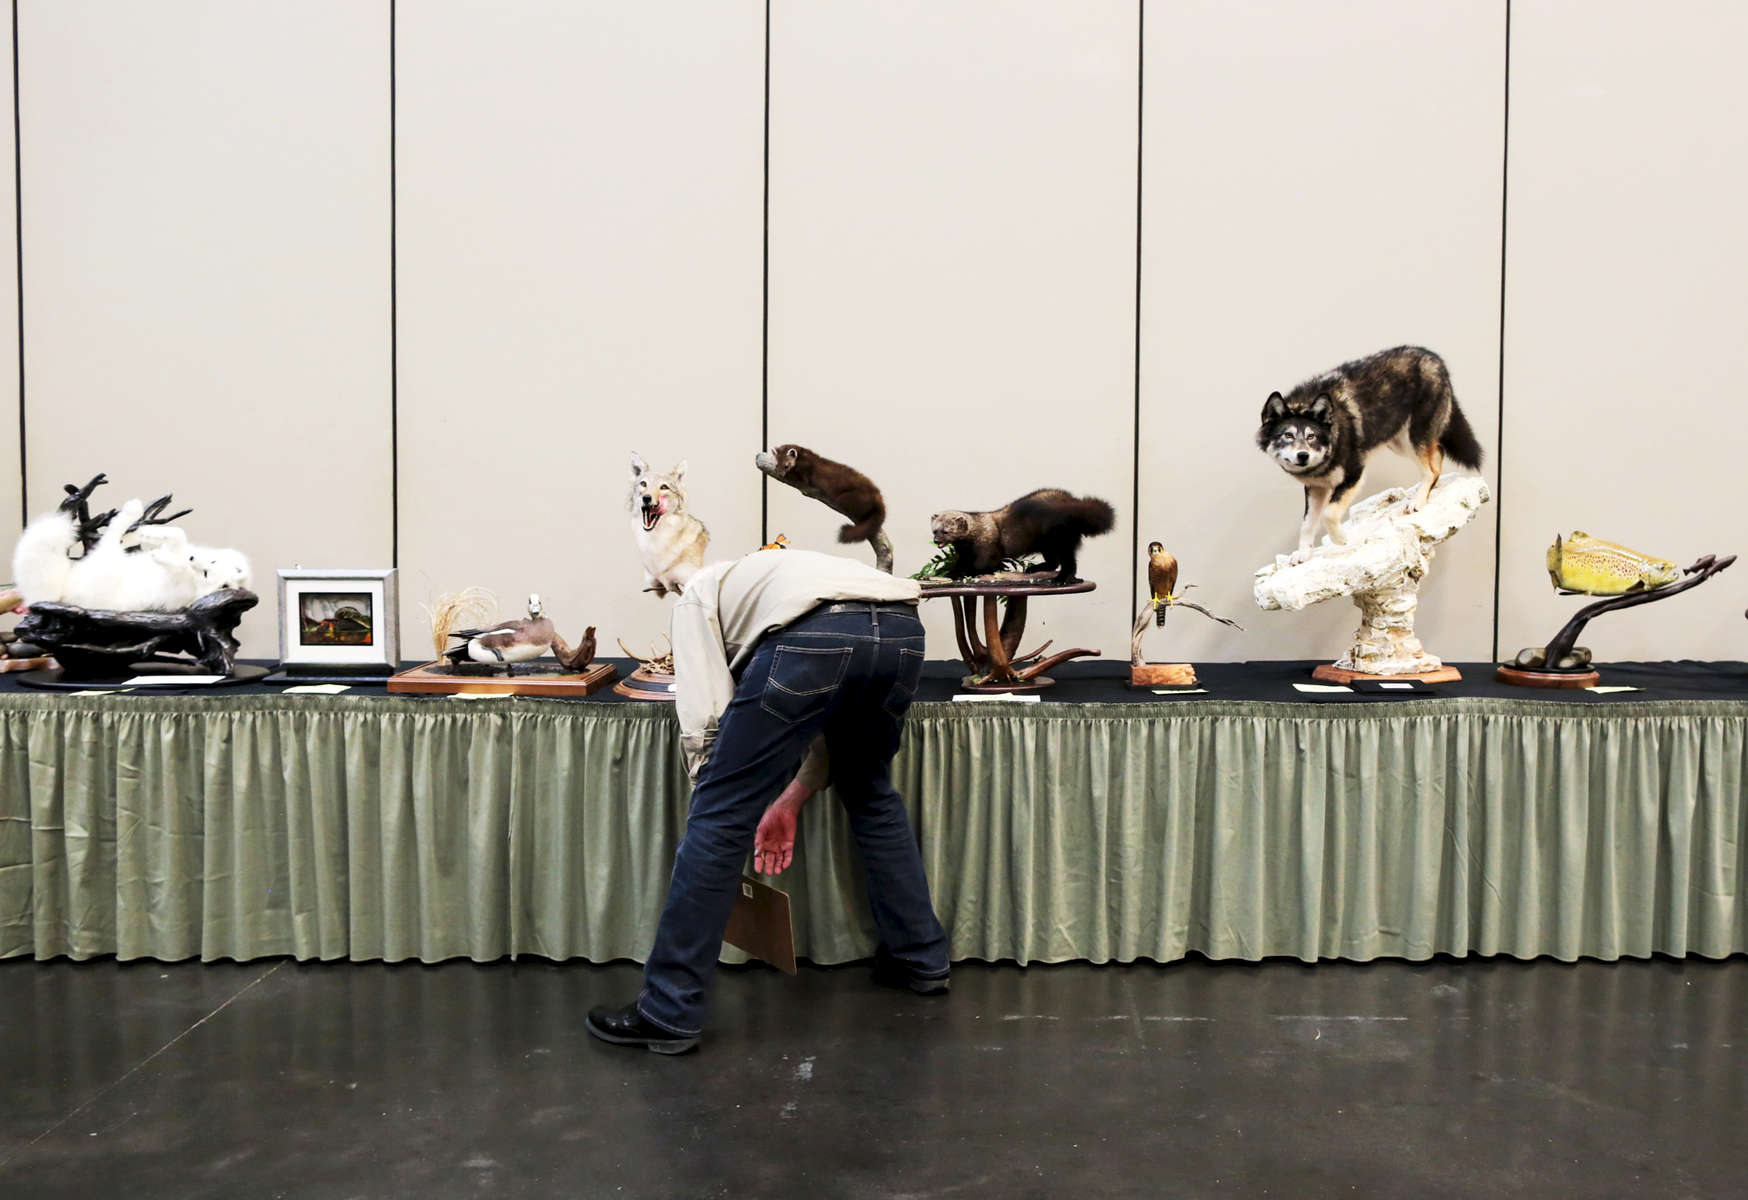 Harvey Ziegler, a bird judge, looks at the entries during the World Taxidermy & Fish Carving Championships, at the Springfield Expo Center, in Springfield, Missouri on May 1, 2019.